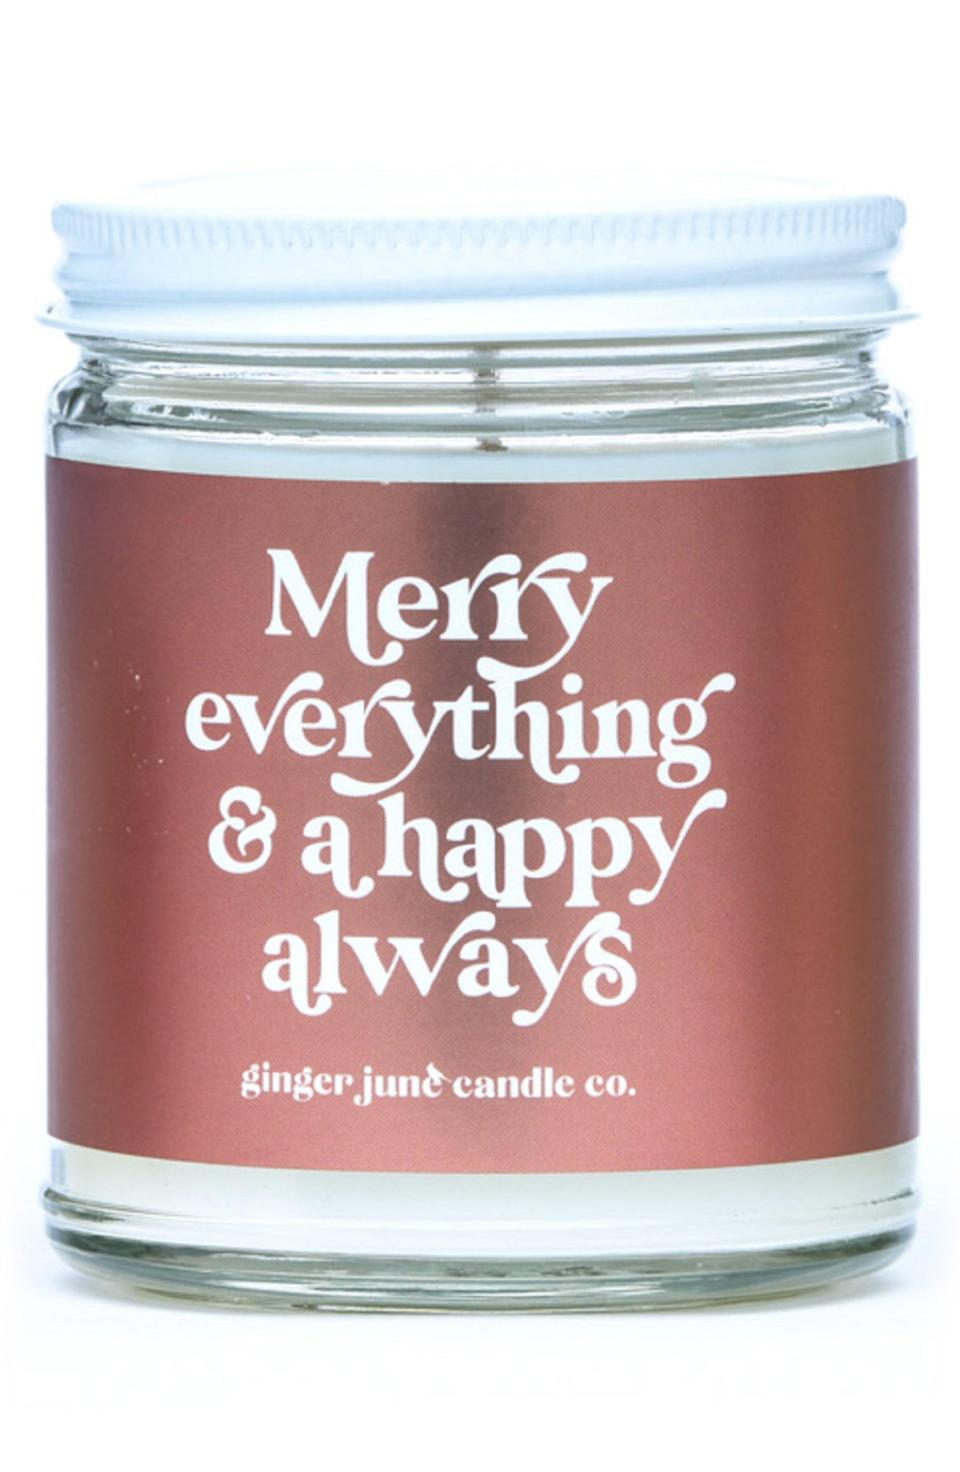 """<p><strong>GINGER JUNE CANDLE CO.</strong></p><p>nordstrom.com</p><p><strong>$10.50</strong></p><p><a href=""""https://go.redirectingat.com?id=74968X1596630&url=https%3A%2F%2Fwww.nordstrom.com%2Fs%2Fginger-june-candle-co-merry-everything-a-happy-always-large-jar-candle%2F5769697&sref=https%3A%2F%2Fwww.marieclaire.com%2Ffashion%2Fg35090742%2Fnordstrom-half-yearly-sale-2020%2F"""" rel=""""nofollow noopener"""" target=""""_blank"""" data-ylk=""""slk:Shop Now"""" class=""""link rapid-noclick-resp"""">Shop Now</a></p>"""